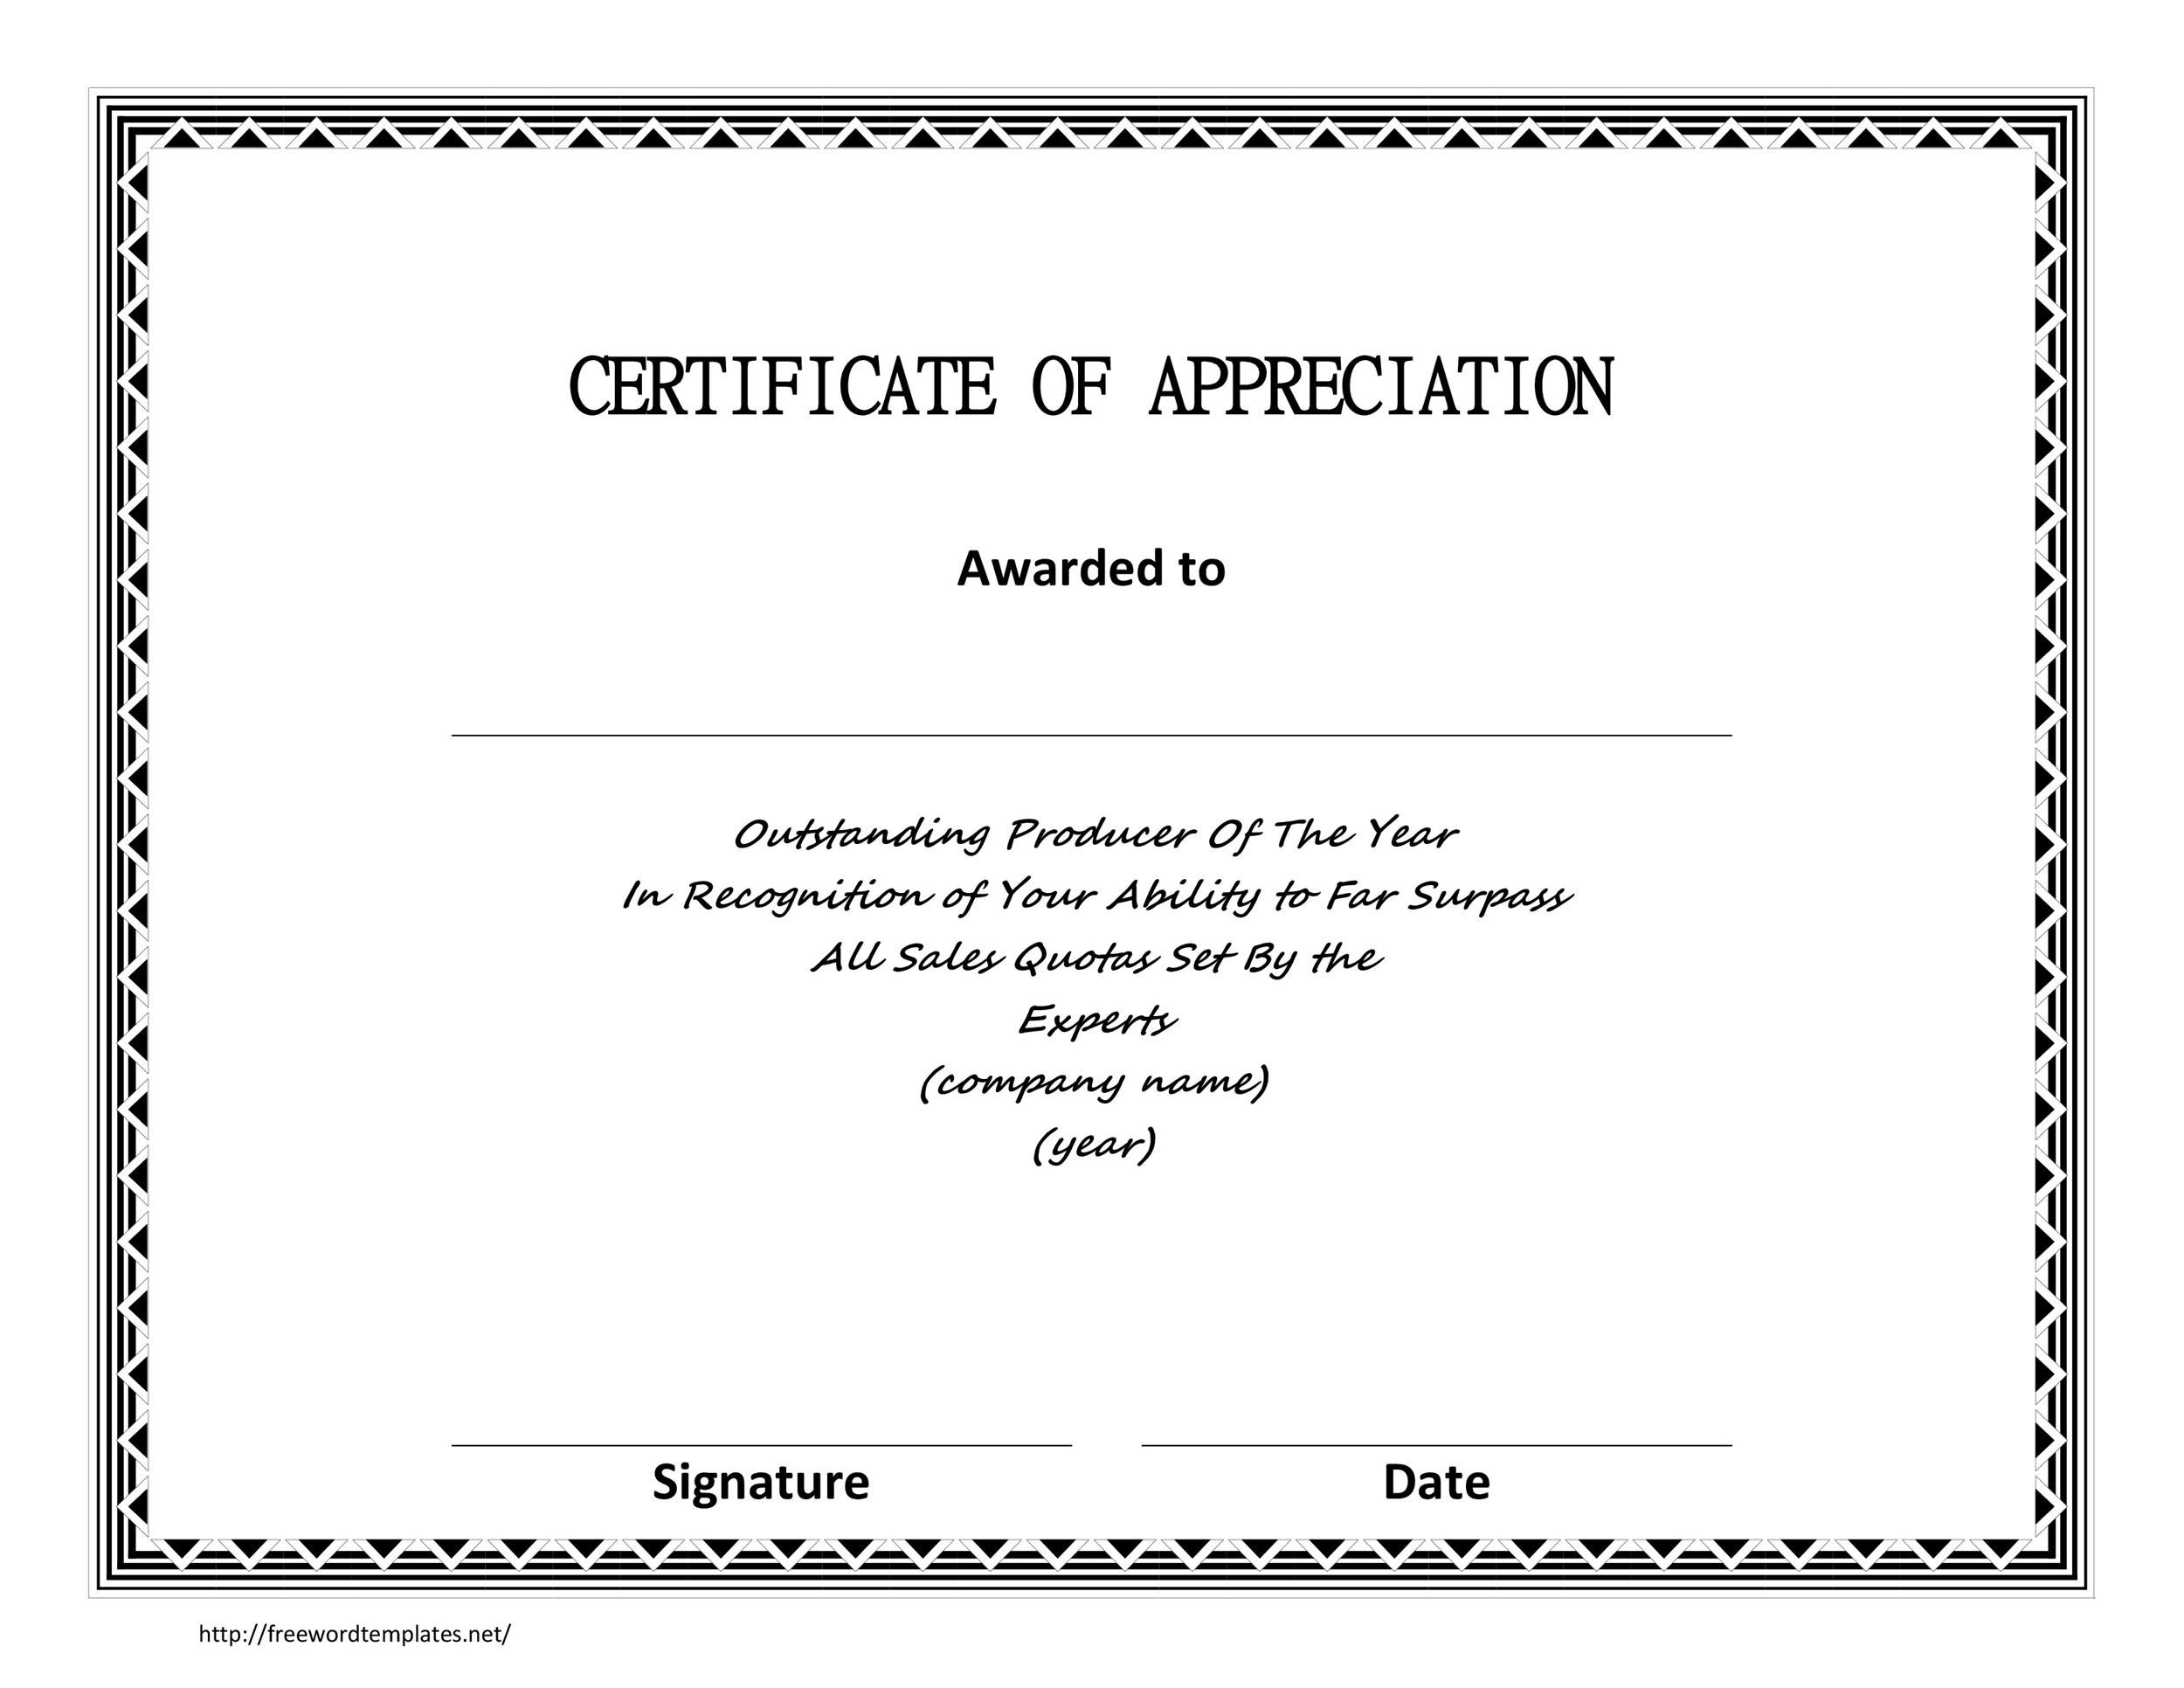 gallery of 30 free certificate of appreciation templates and letters